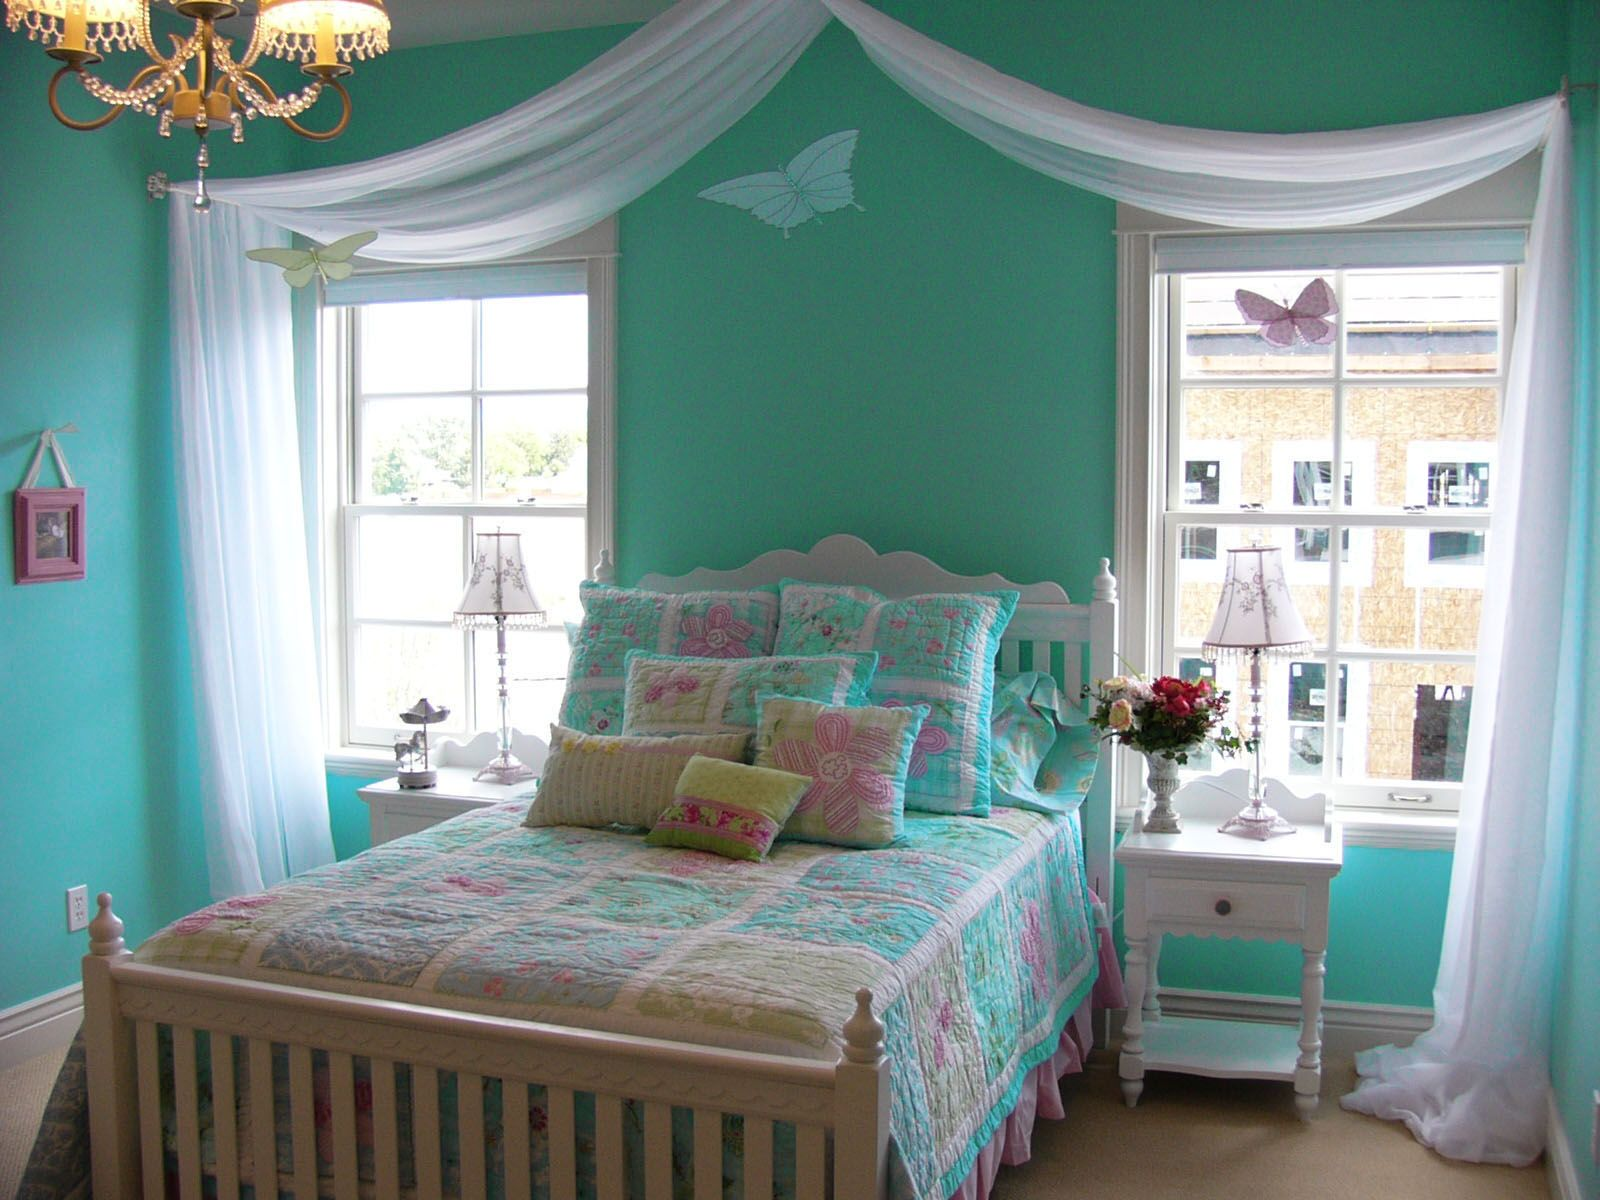 Bedroom wall designs for women - Bedroom Decor